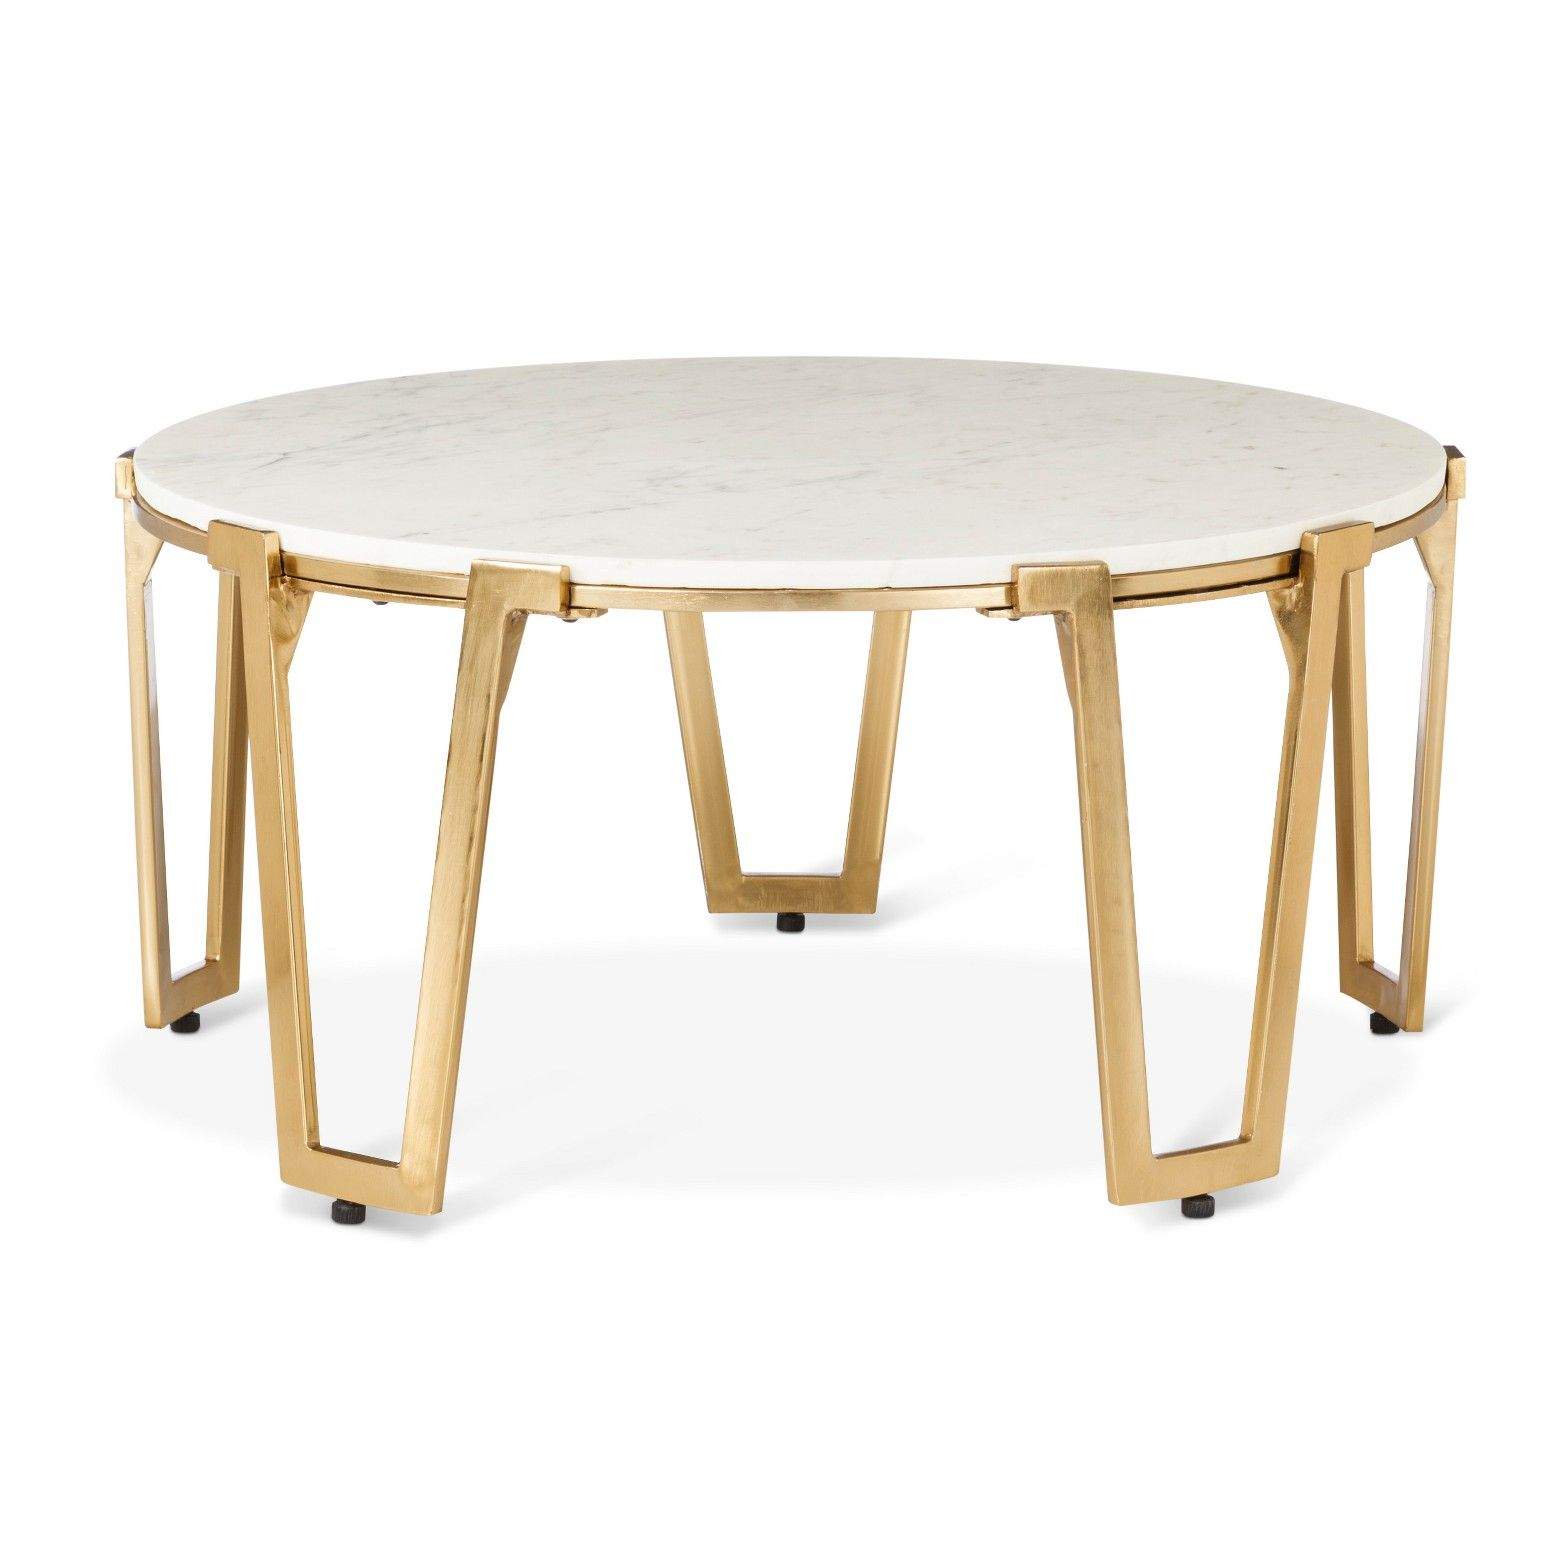 the brass and marble coffee table nate berkus has style class round gold accent with top that will make stand out your living room family metallic finish target bunk beds ashley